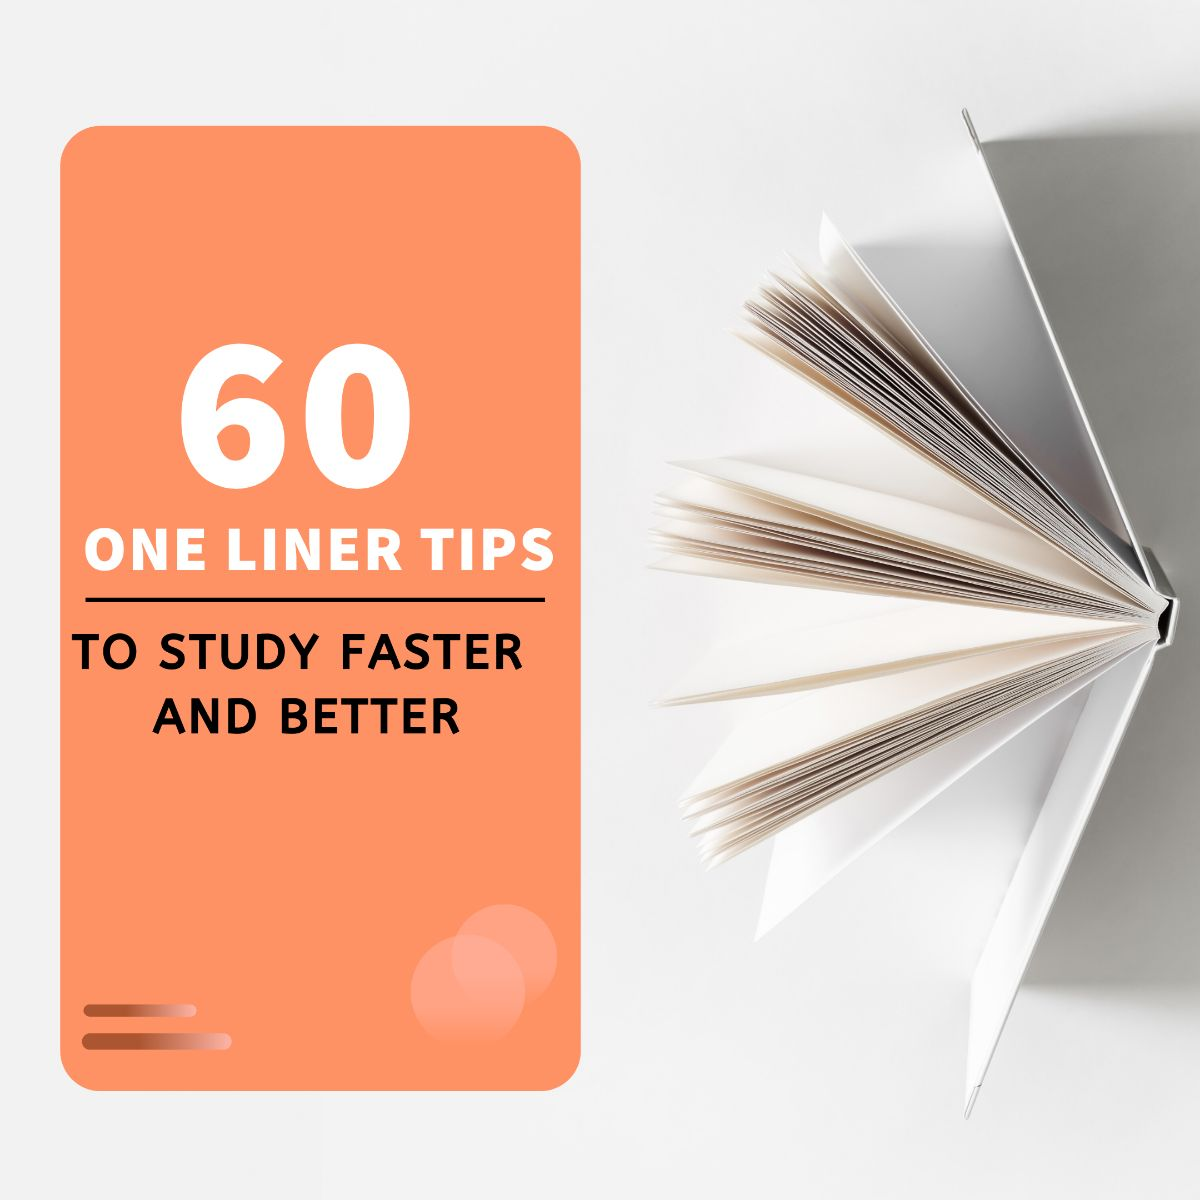 60 one liner tips to study faster and better